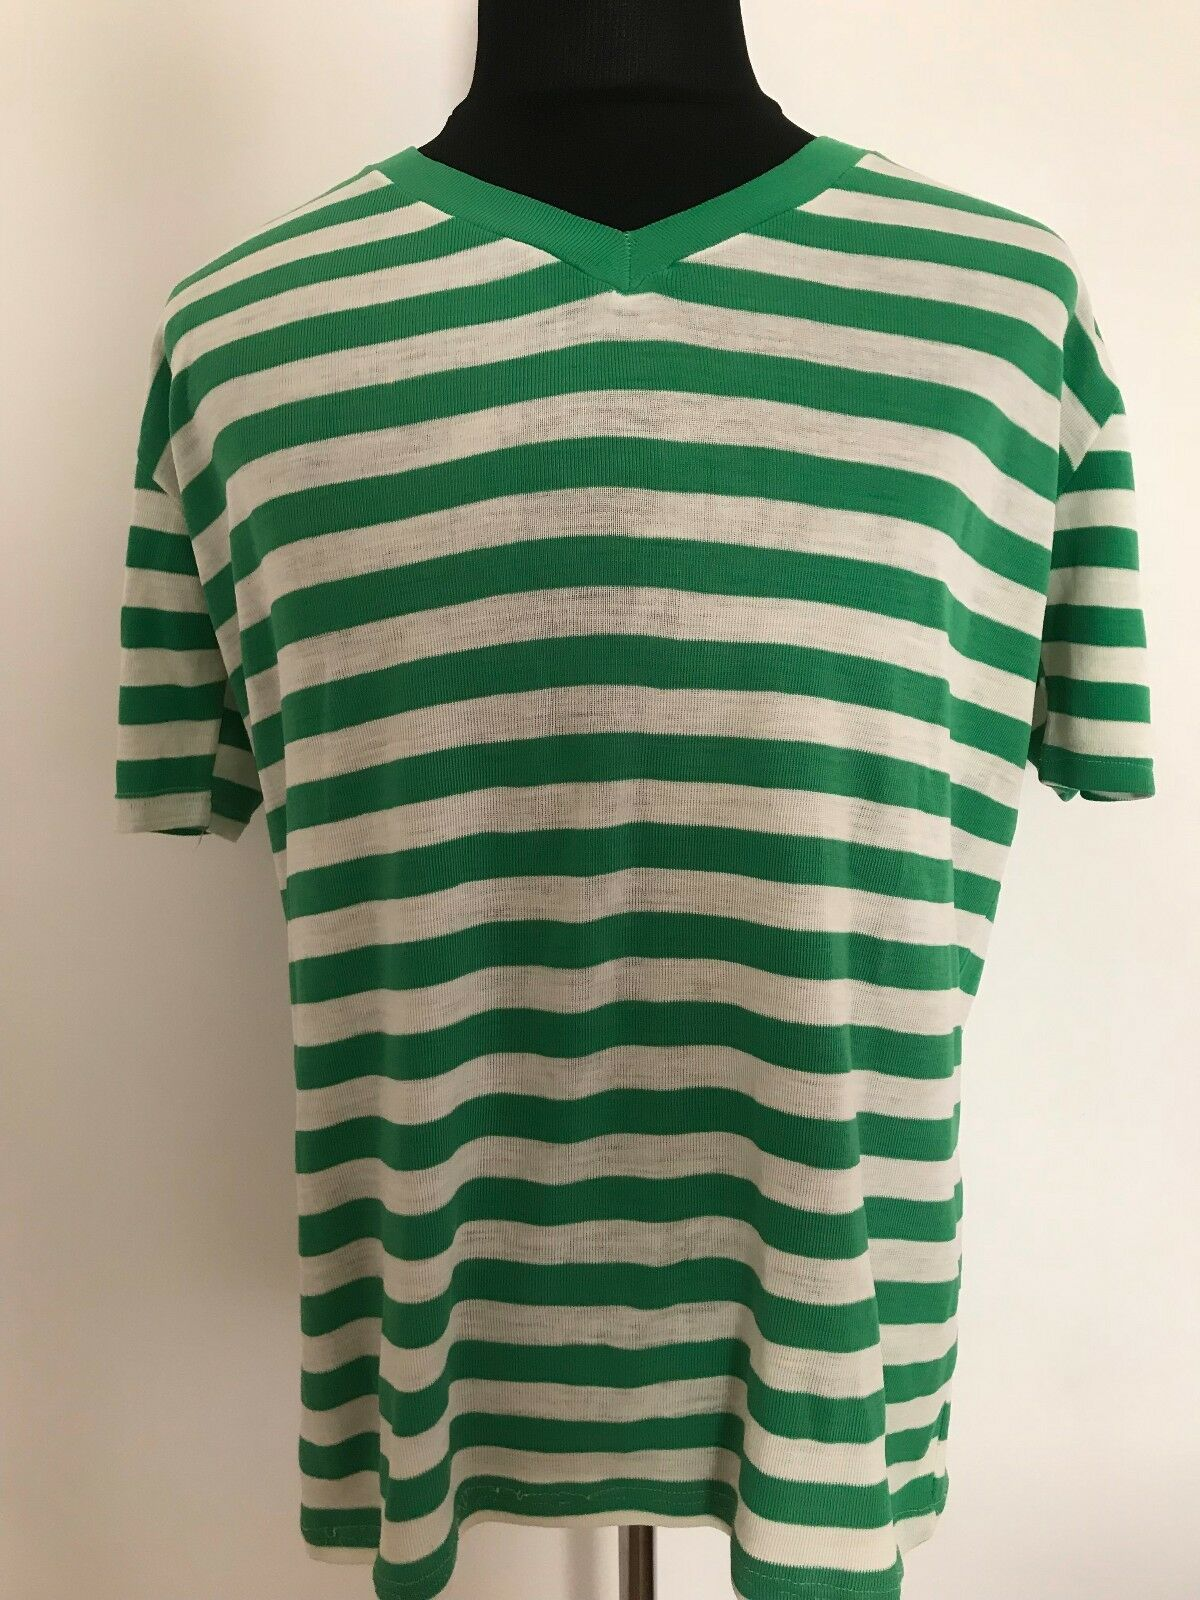 Celtic Football Club - Vintage Shirt Jersey 70' - Original and Rare